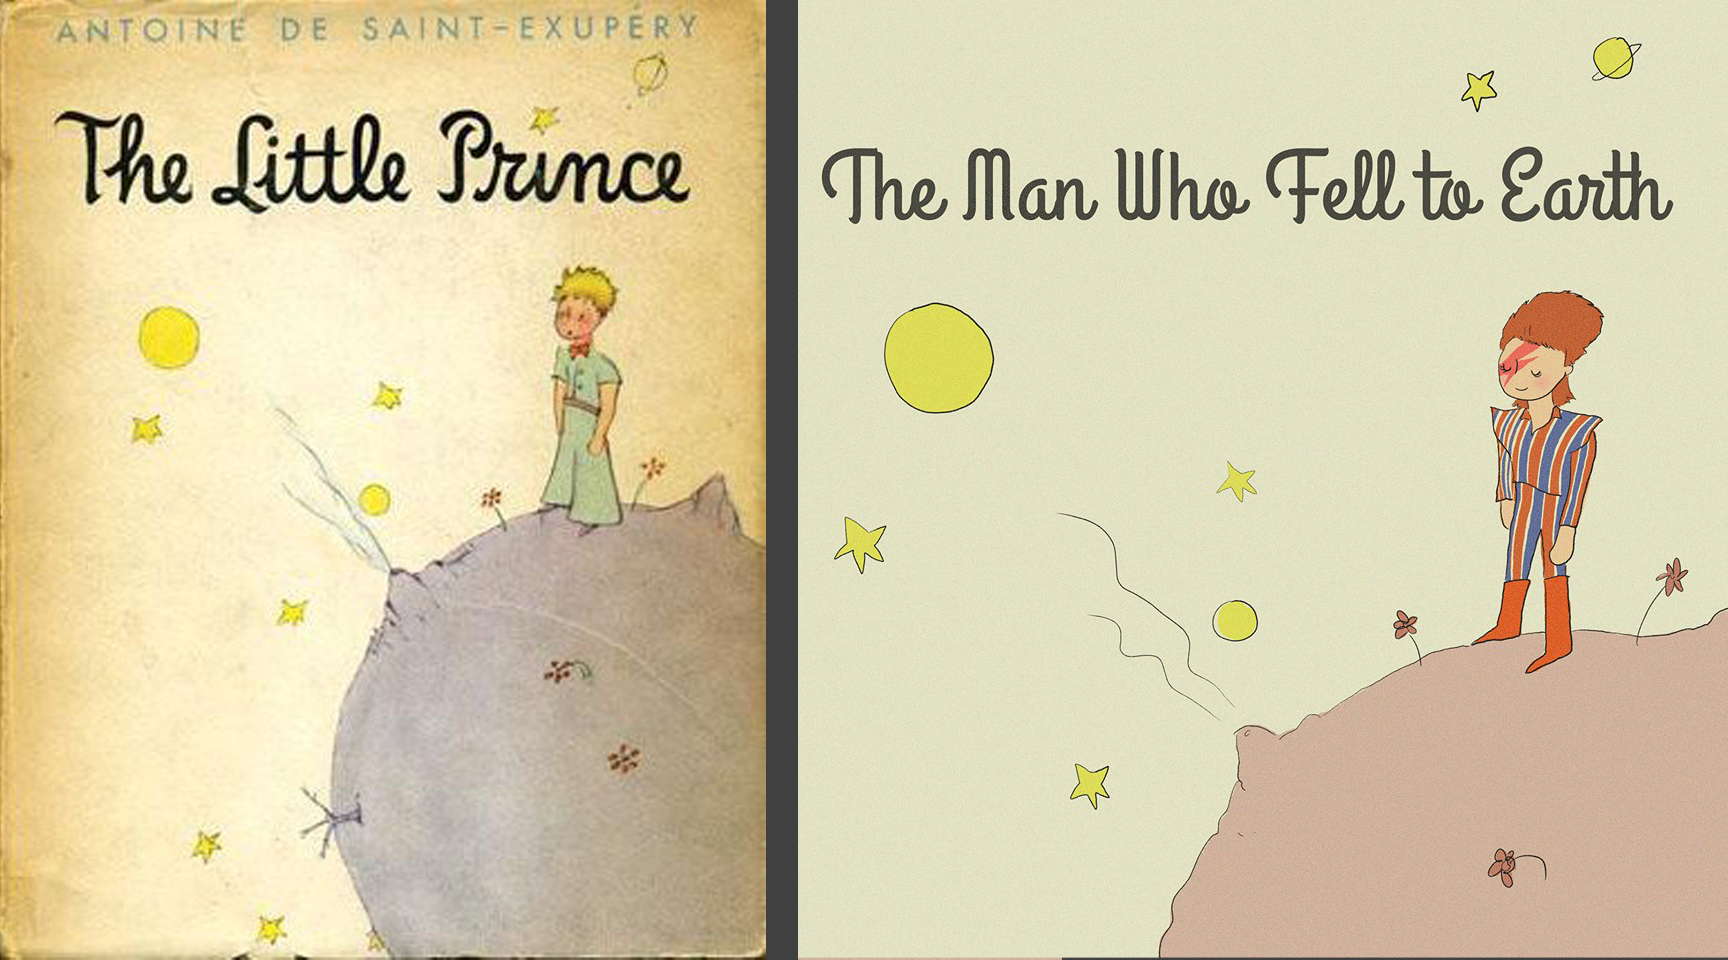 Bowie as the Little Prince